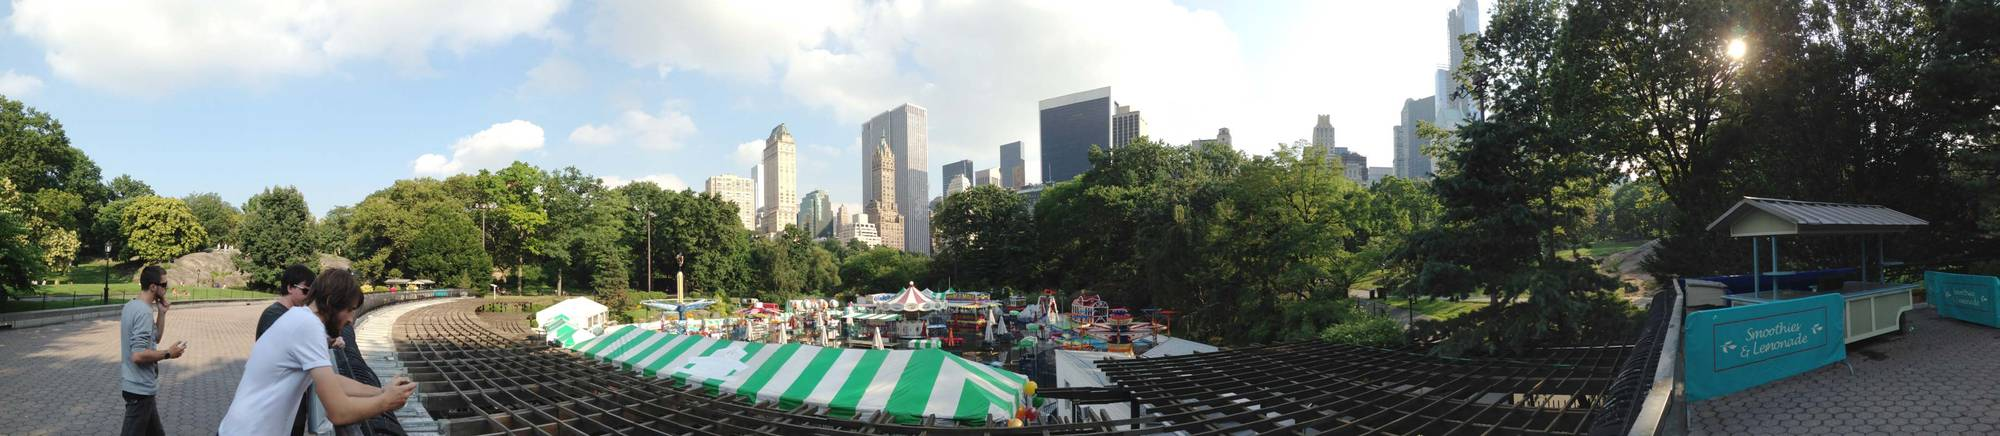 Panorama of Central Park